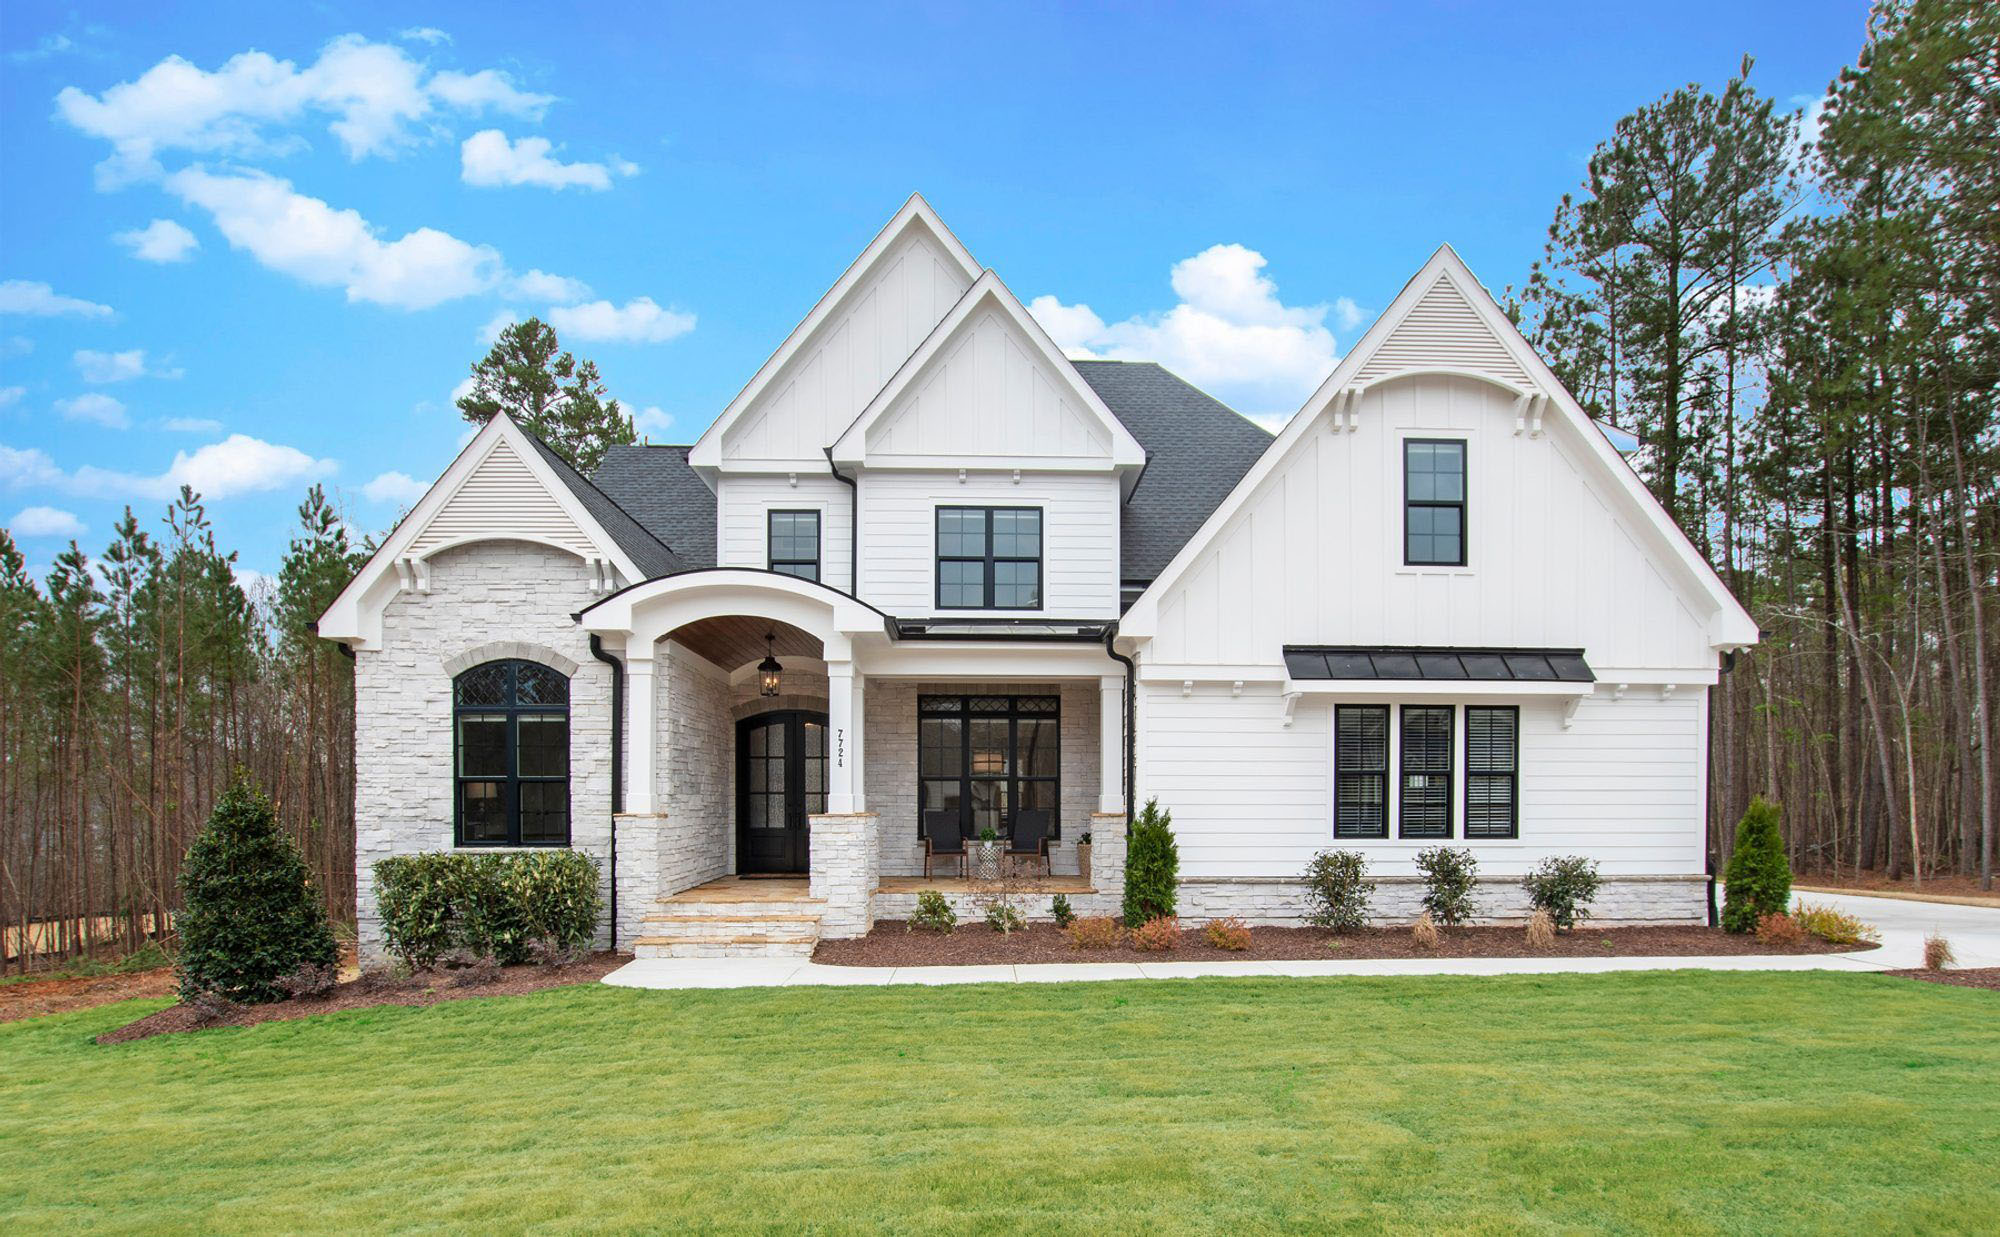 Beautiful modern farmhouse with an arched portico. Portico Designs.